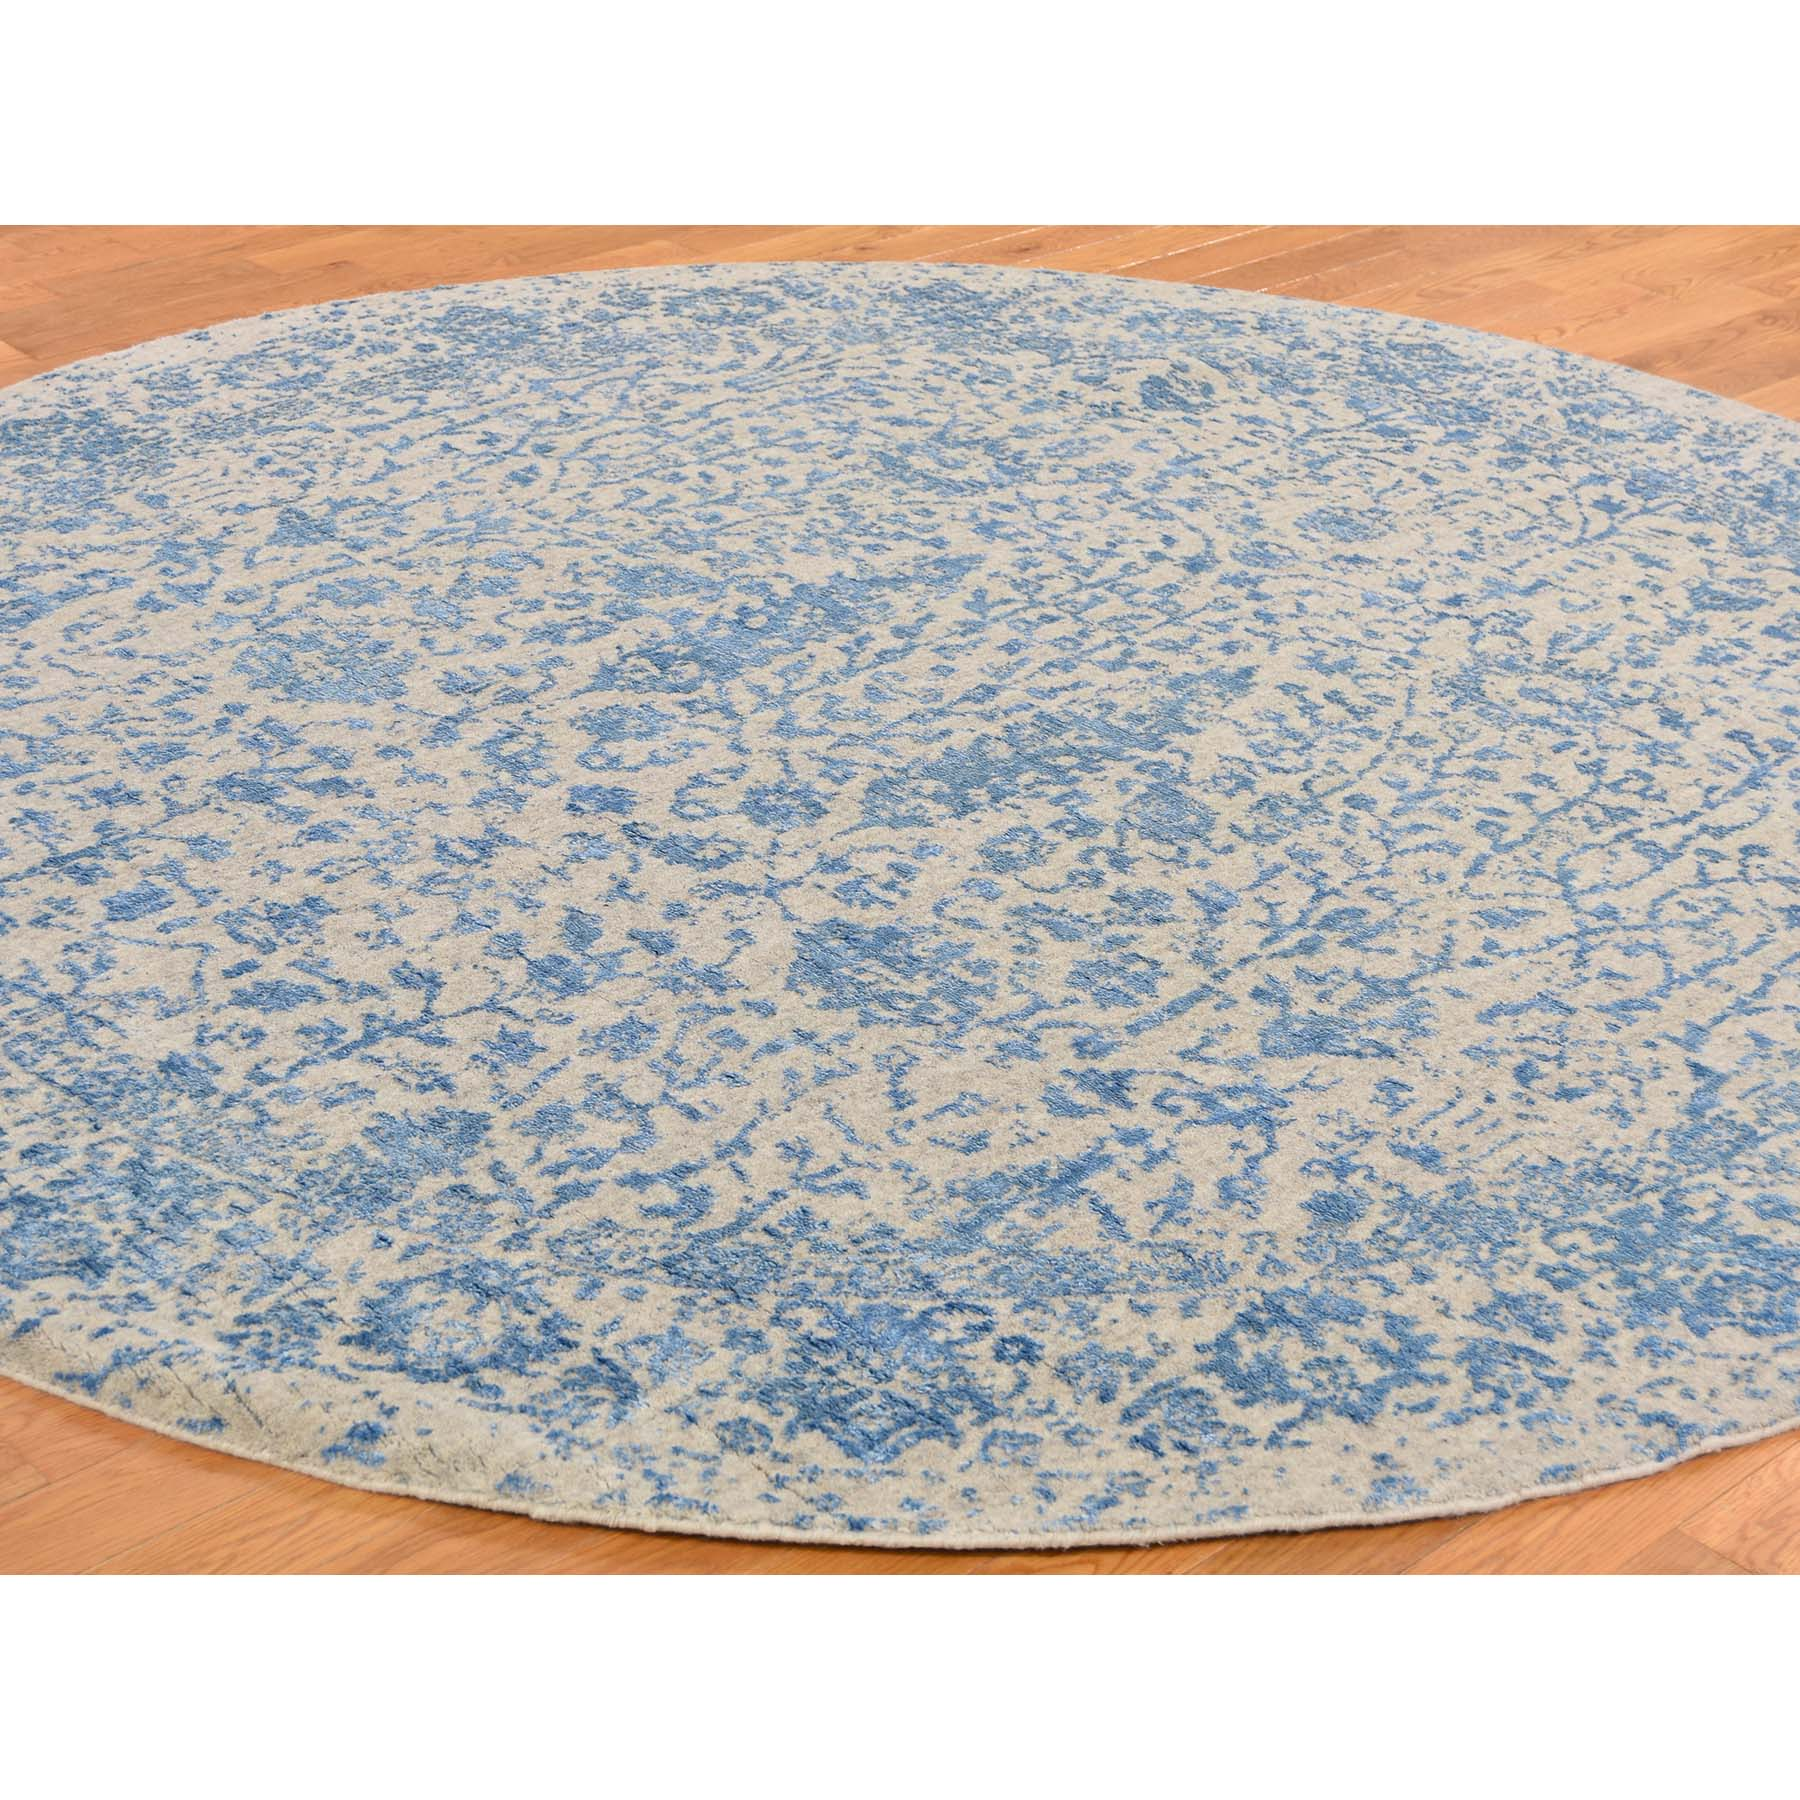 8-x8- jacquard Hand-Loomed Round Blue Broken Cypress Tree Design Wool And Silk Thick And Plush Oriental Rug